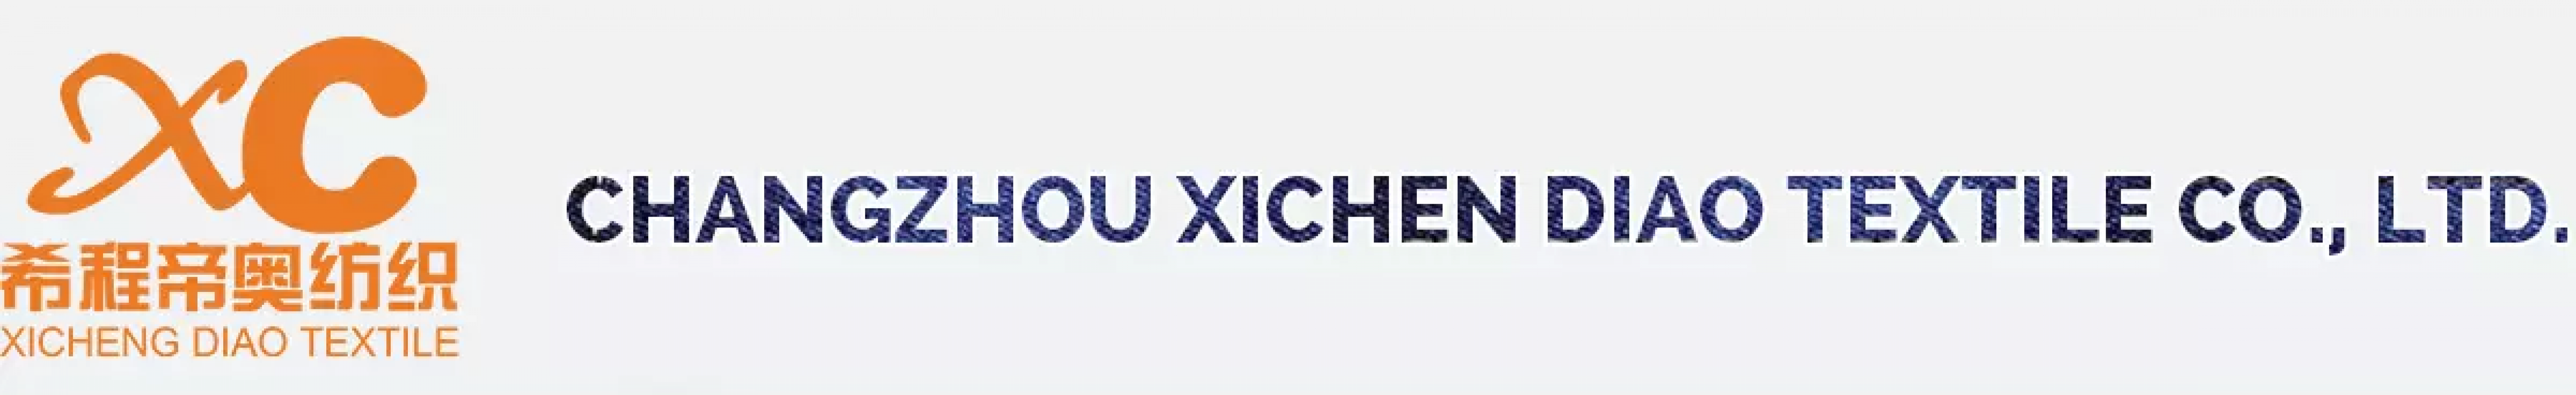 Changzhou Xichen Diao Textile Co., Ltd.